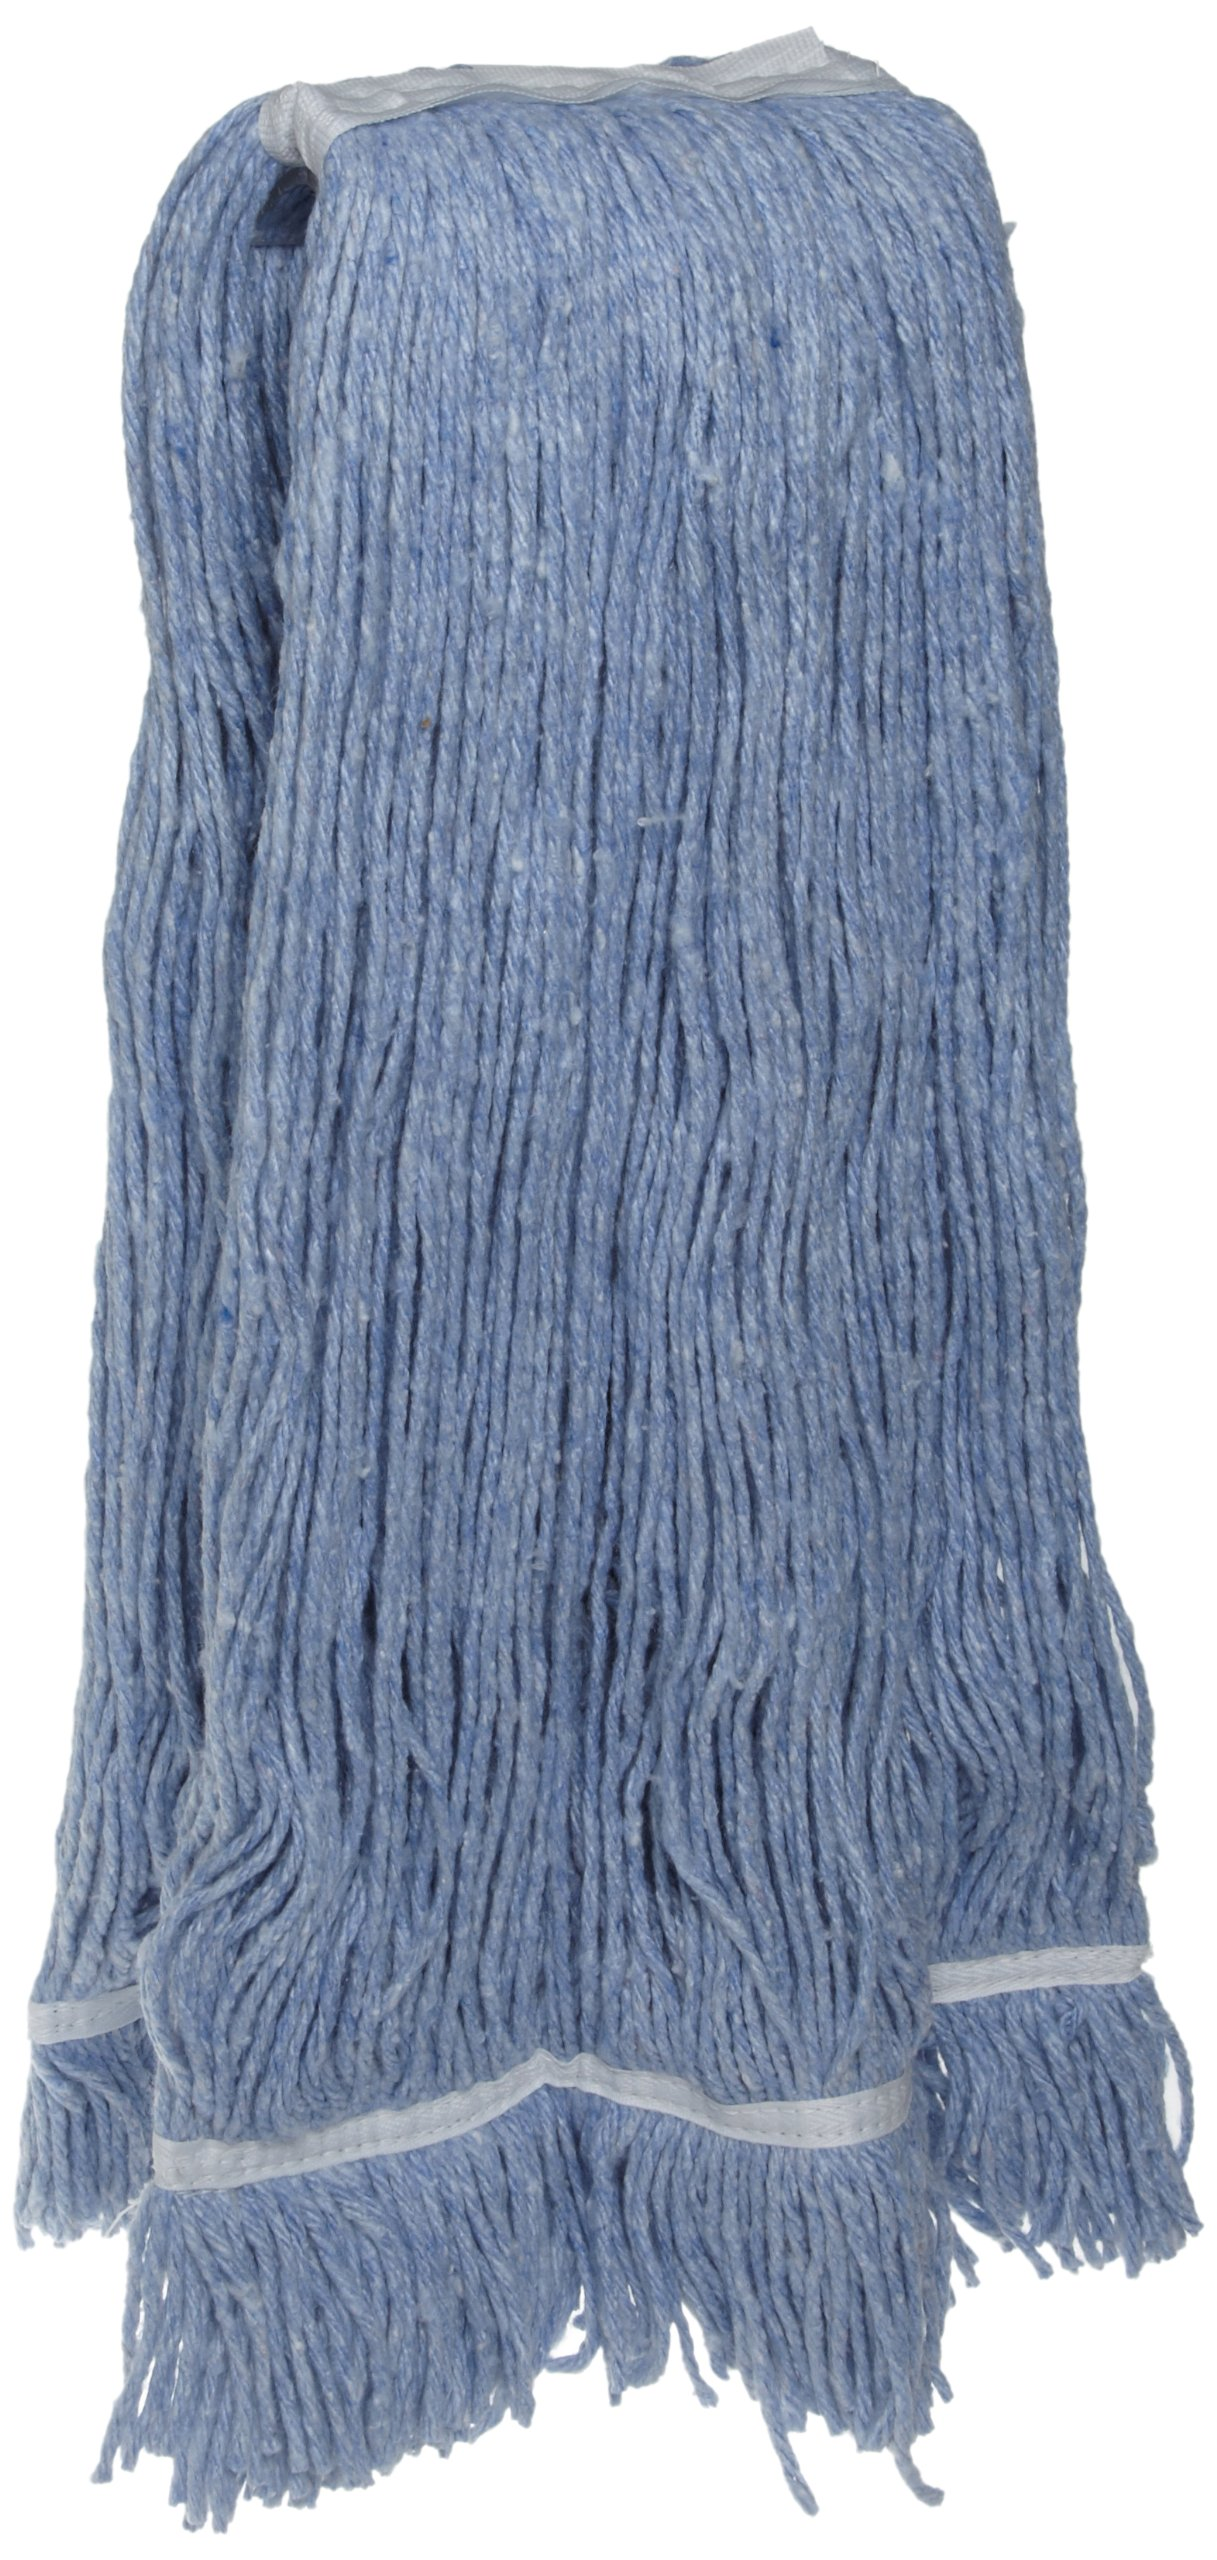 Zephyr 24112 Blendup Blue Blended Natural and Synthetic Fibers 16oz Cut End Wet Mop Head with Fantail (Pack of 12)